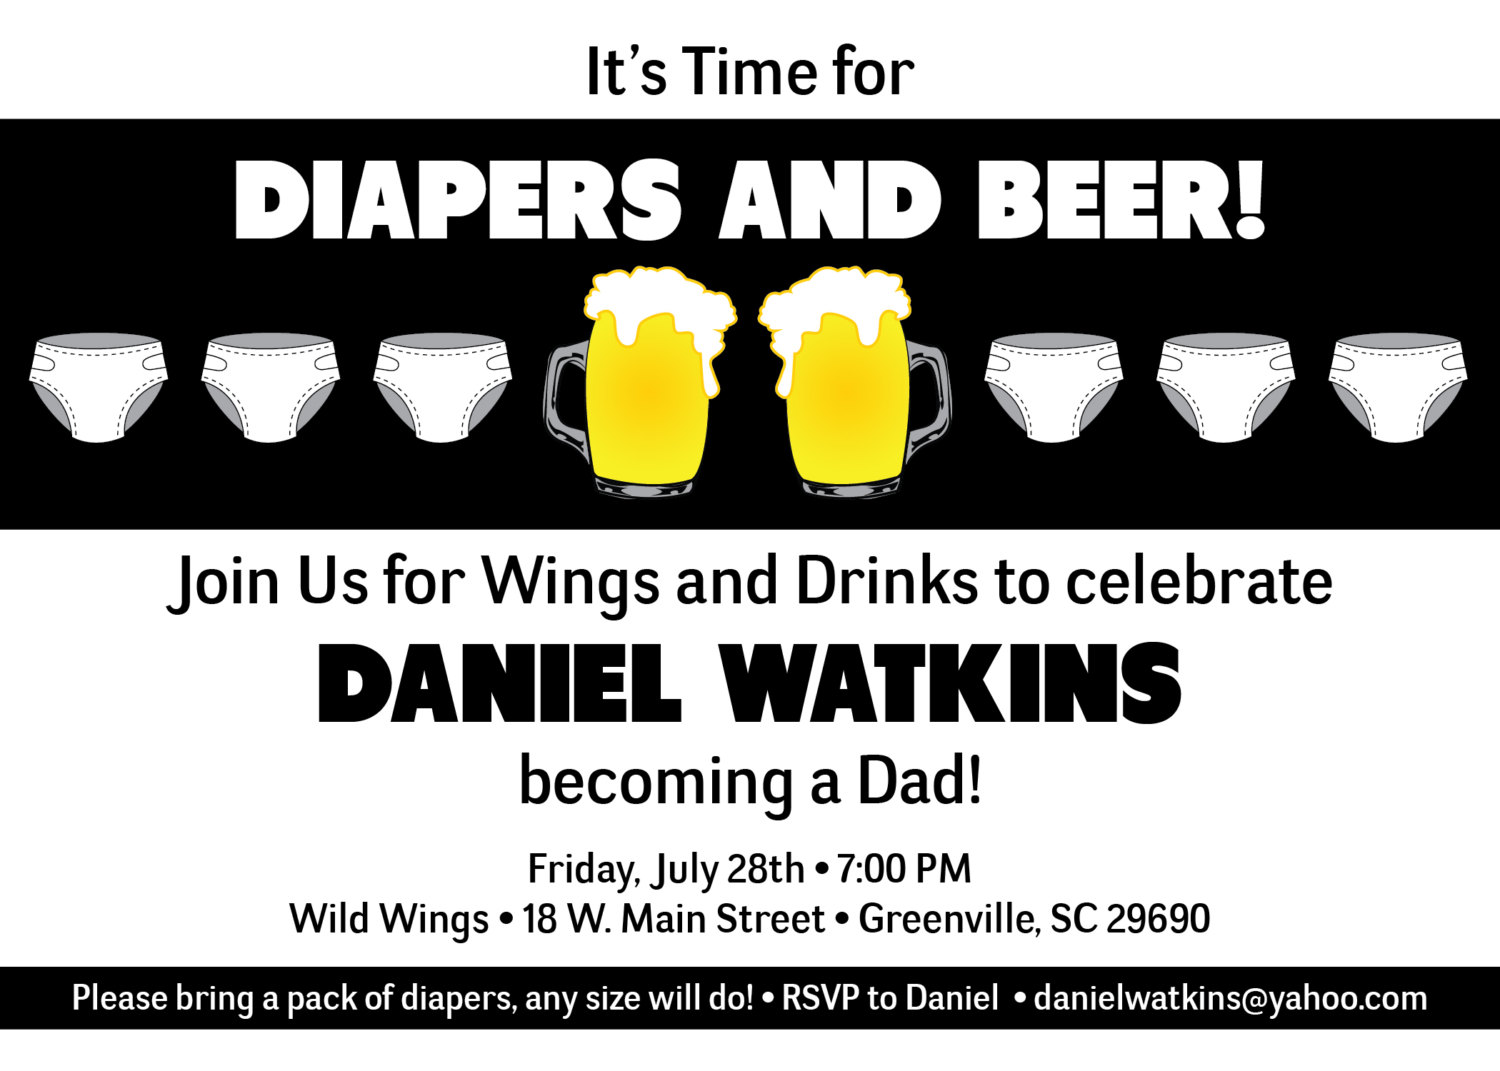 Chuggies beer and diaper party invitations babies for men dads il fullxfull558111571 m8ab small stopboris Gallery